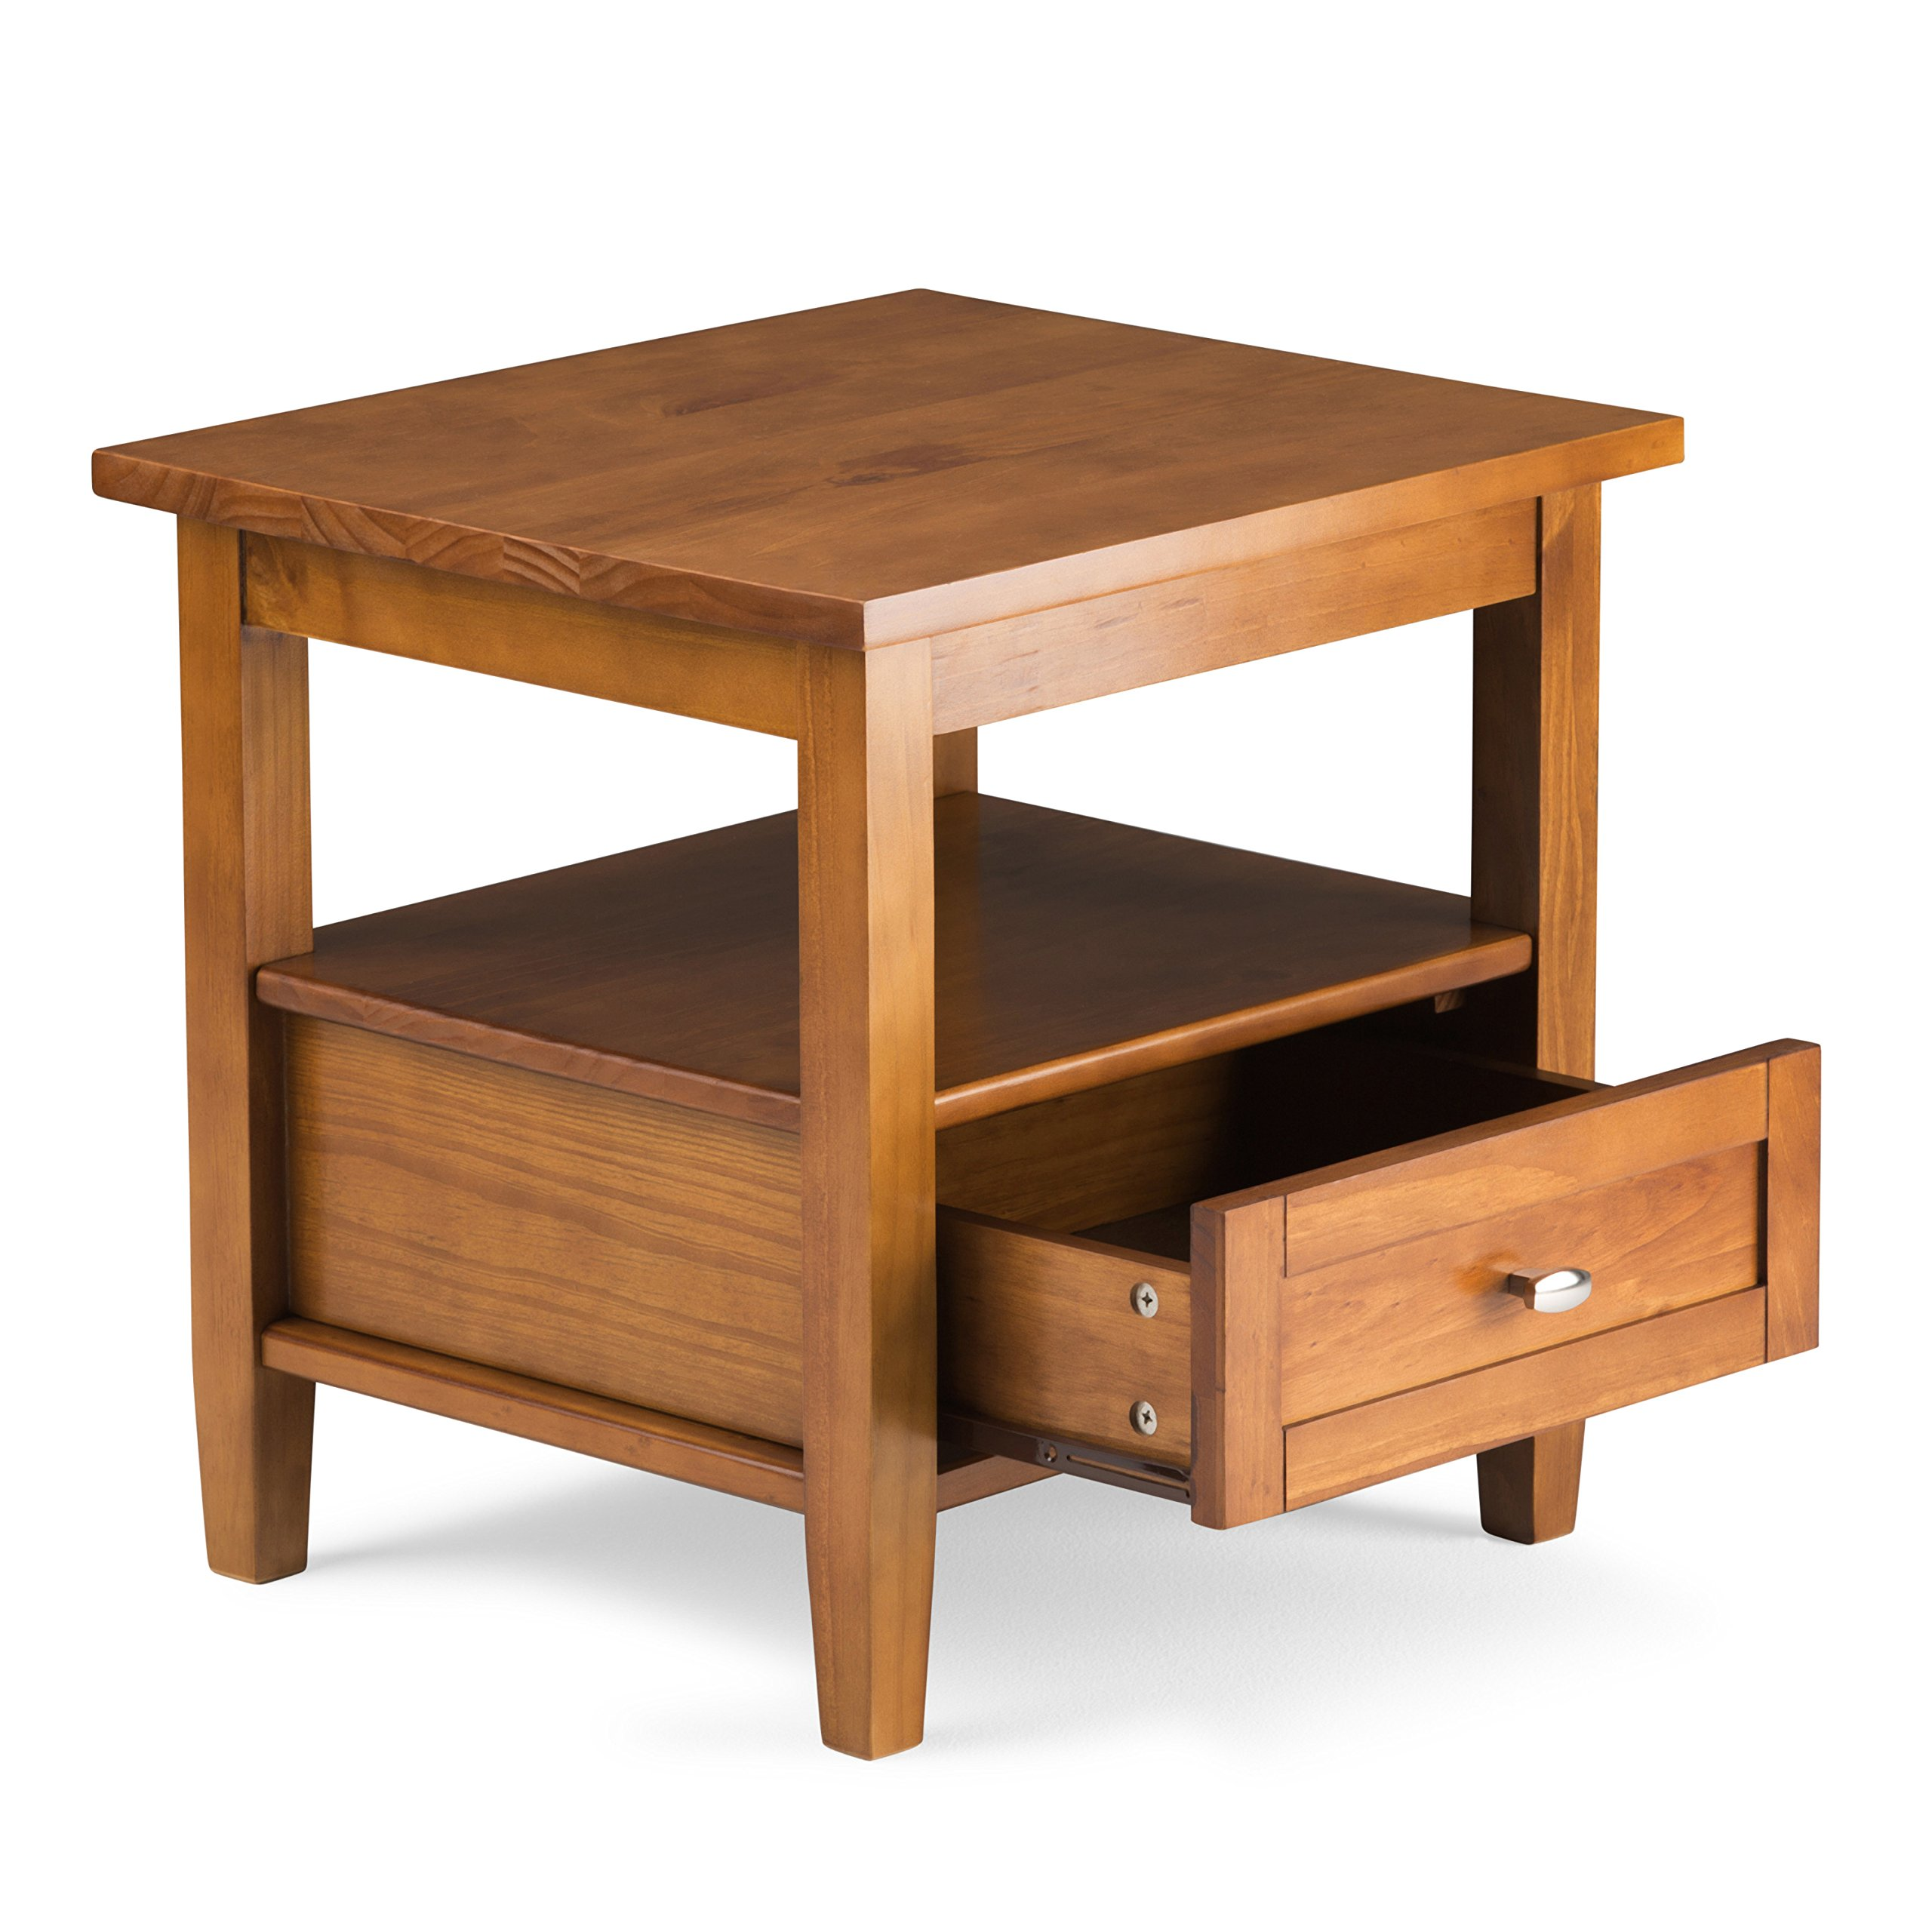 Simpli Home Warm Shaker Solid Wood End Table, Honey Brown by Simpli Home (Image #4)